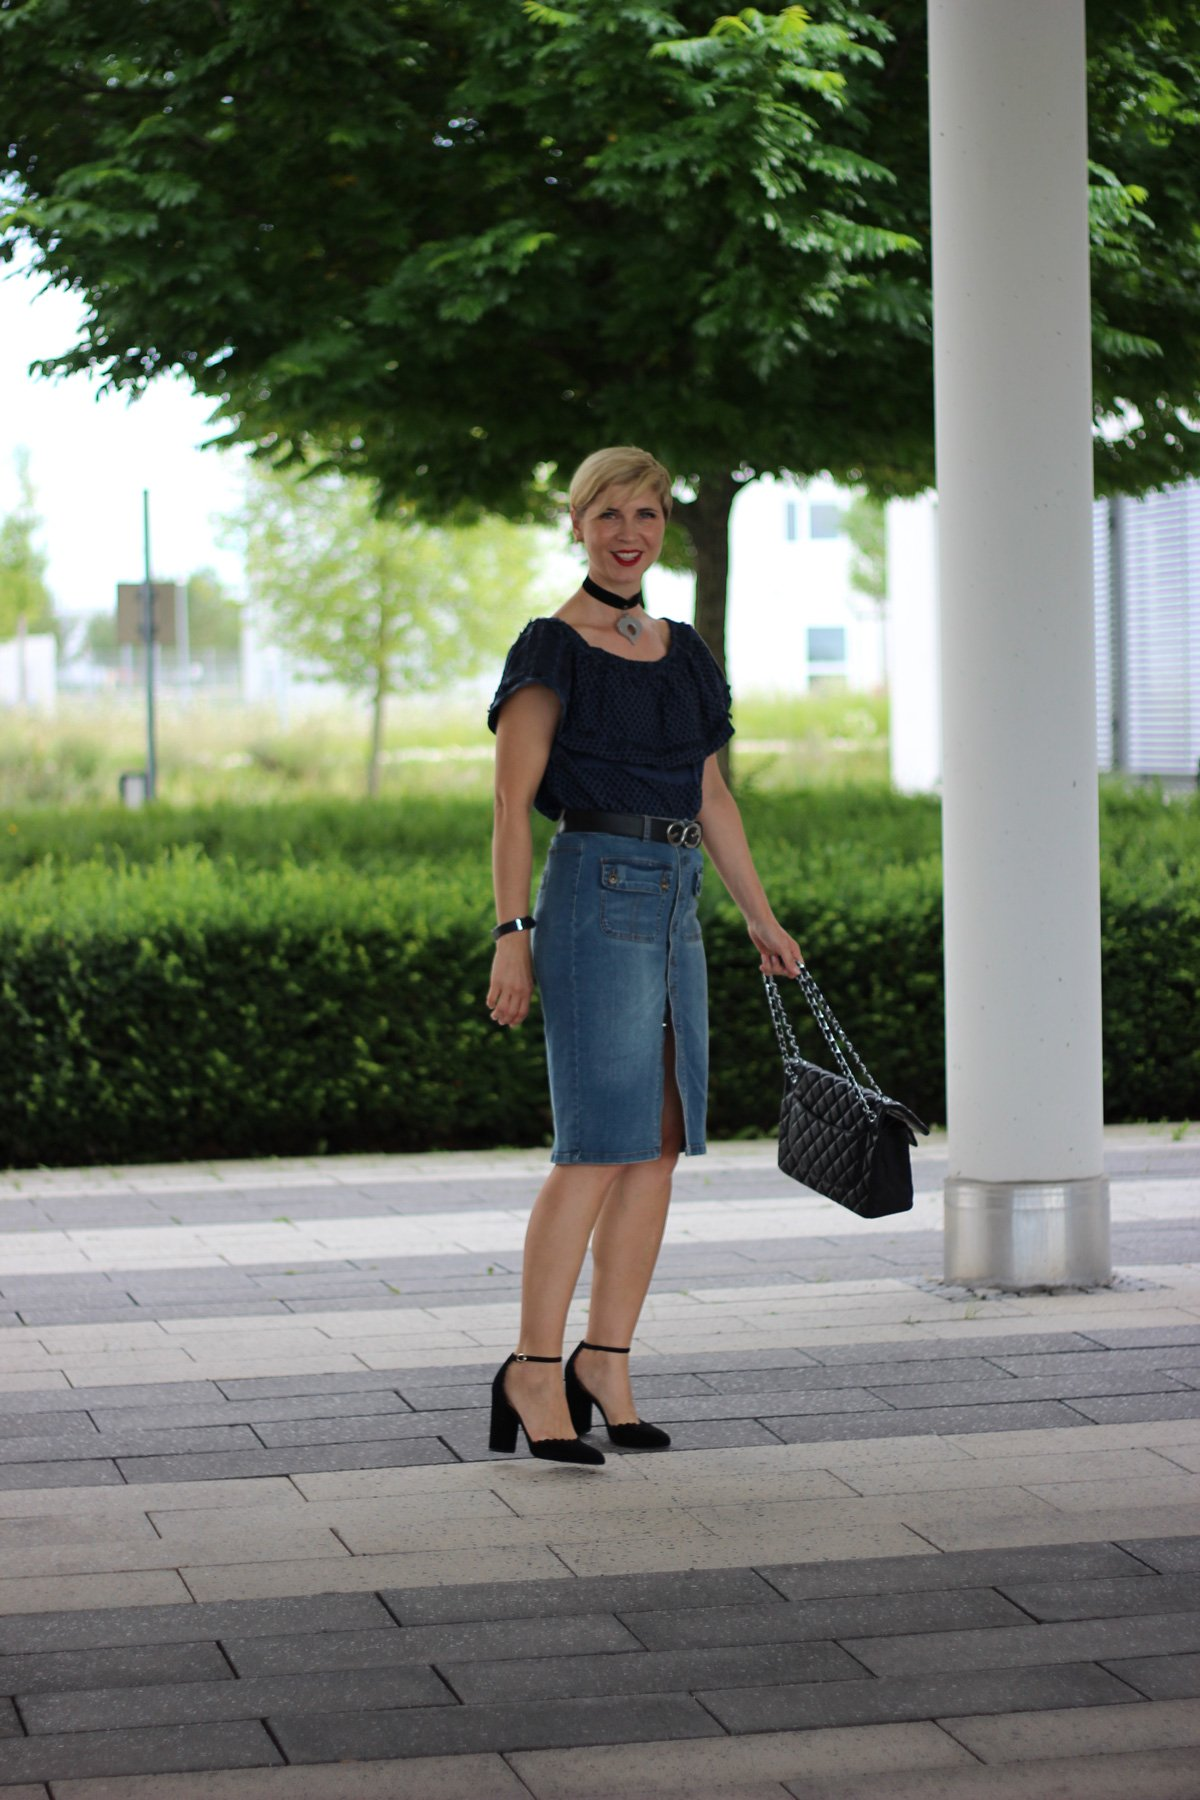 Carmenbluse, Outfitanalyse, wie style ich schulterfrei, jeansrock, wenz, sommerlook, cecilie copenhagen